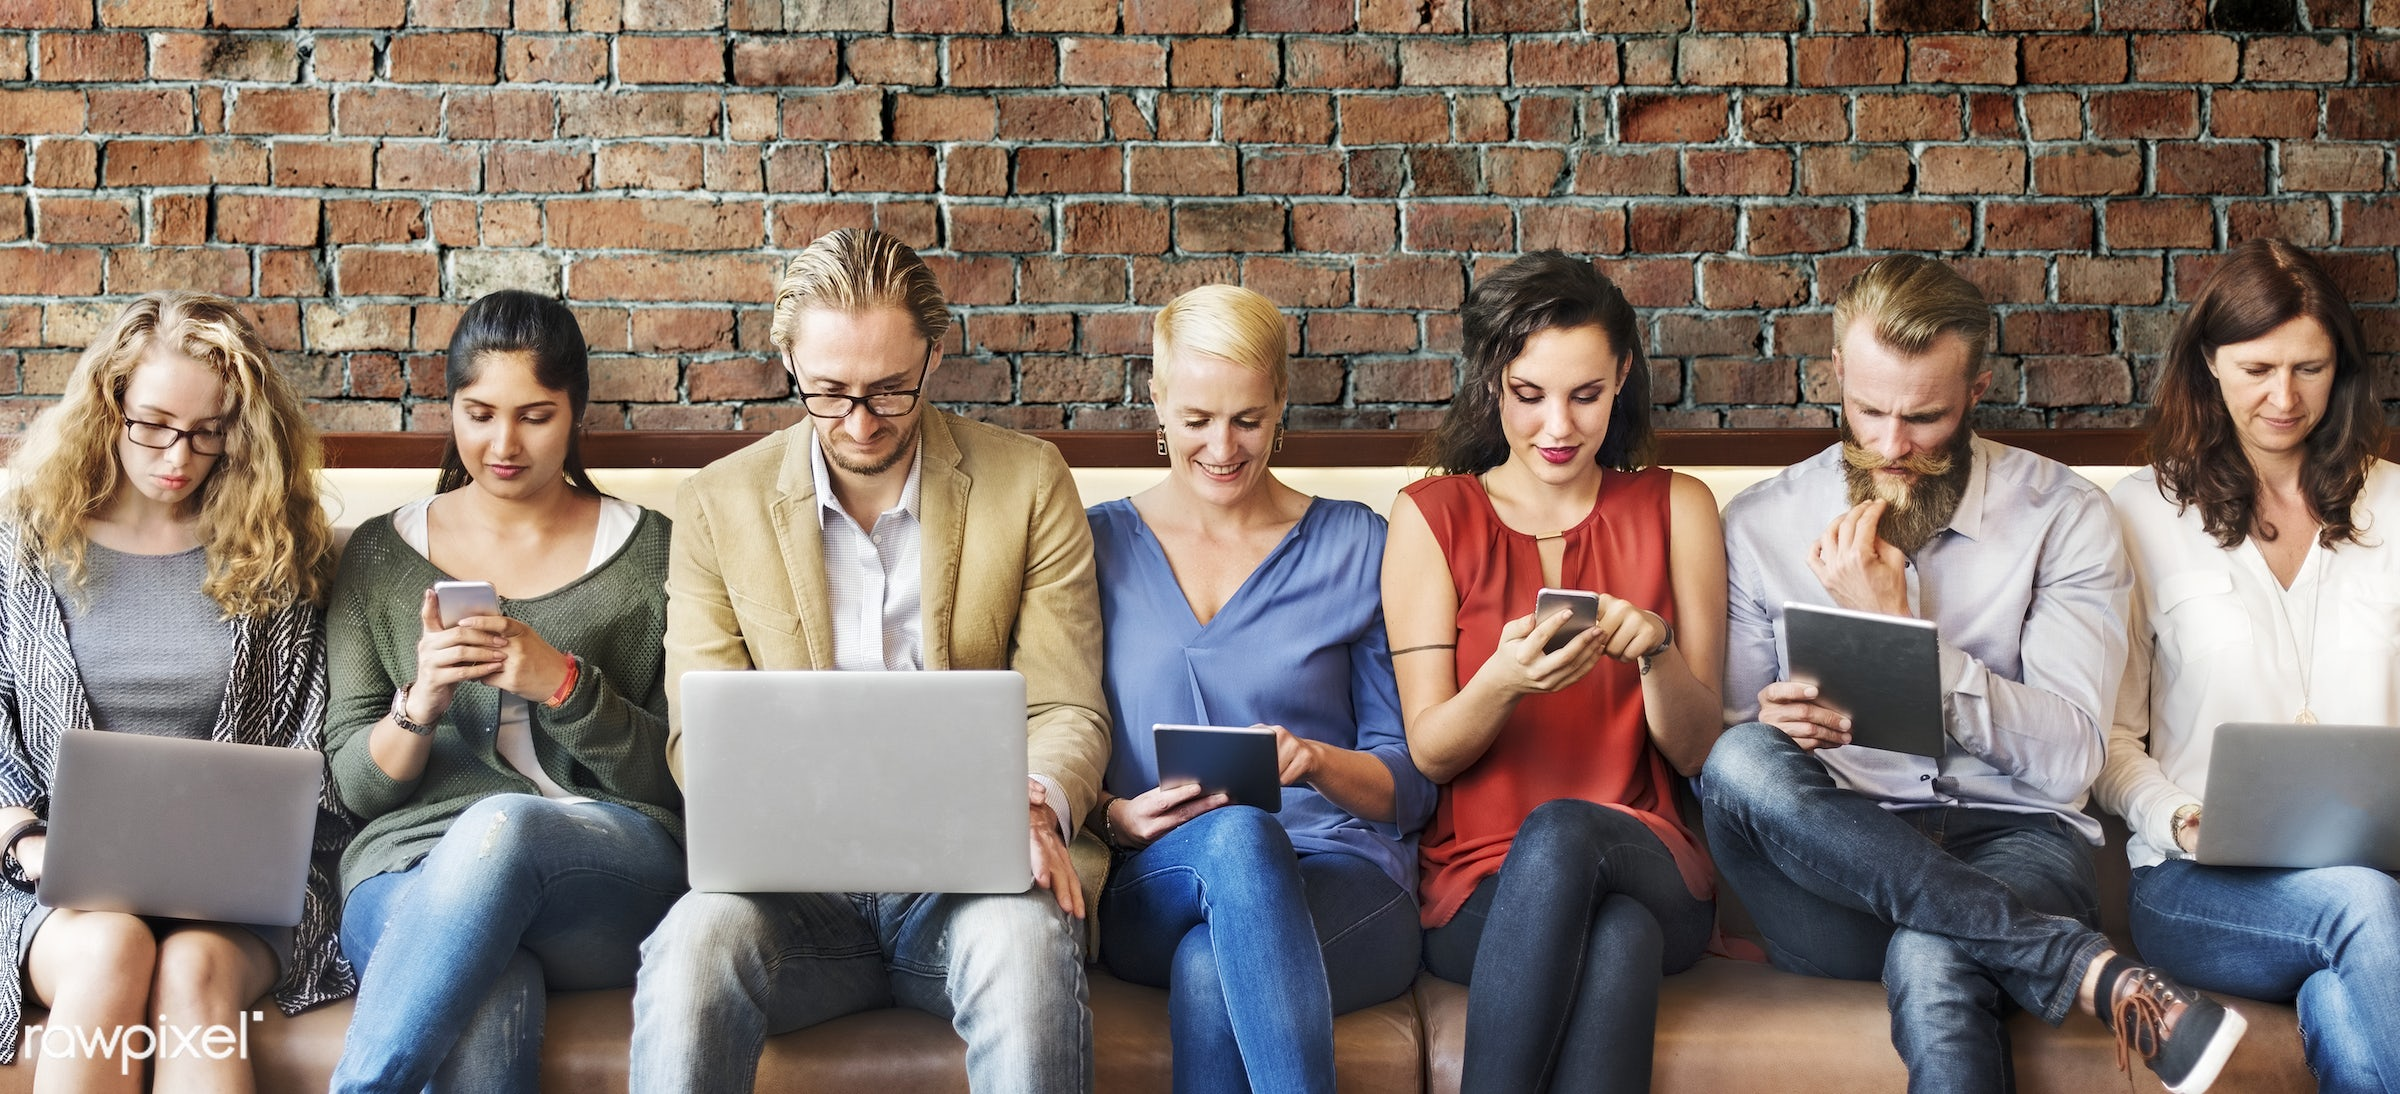 adult, brick wall, browsing, casual, cheerful, colleagues, communication, computer, connection, devices, different, digital...